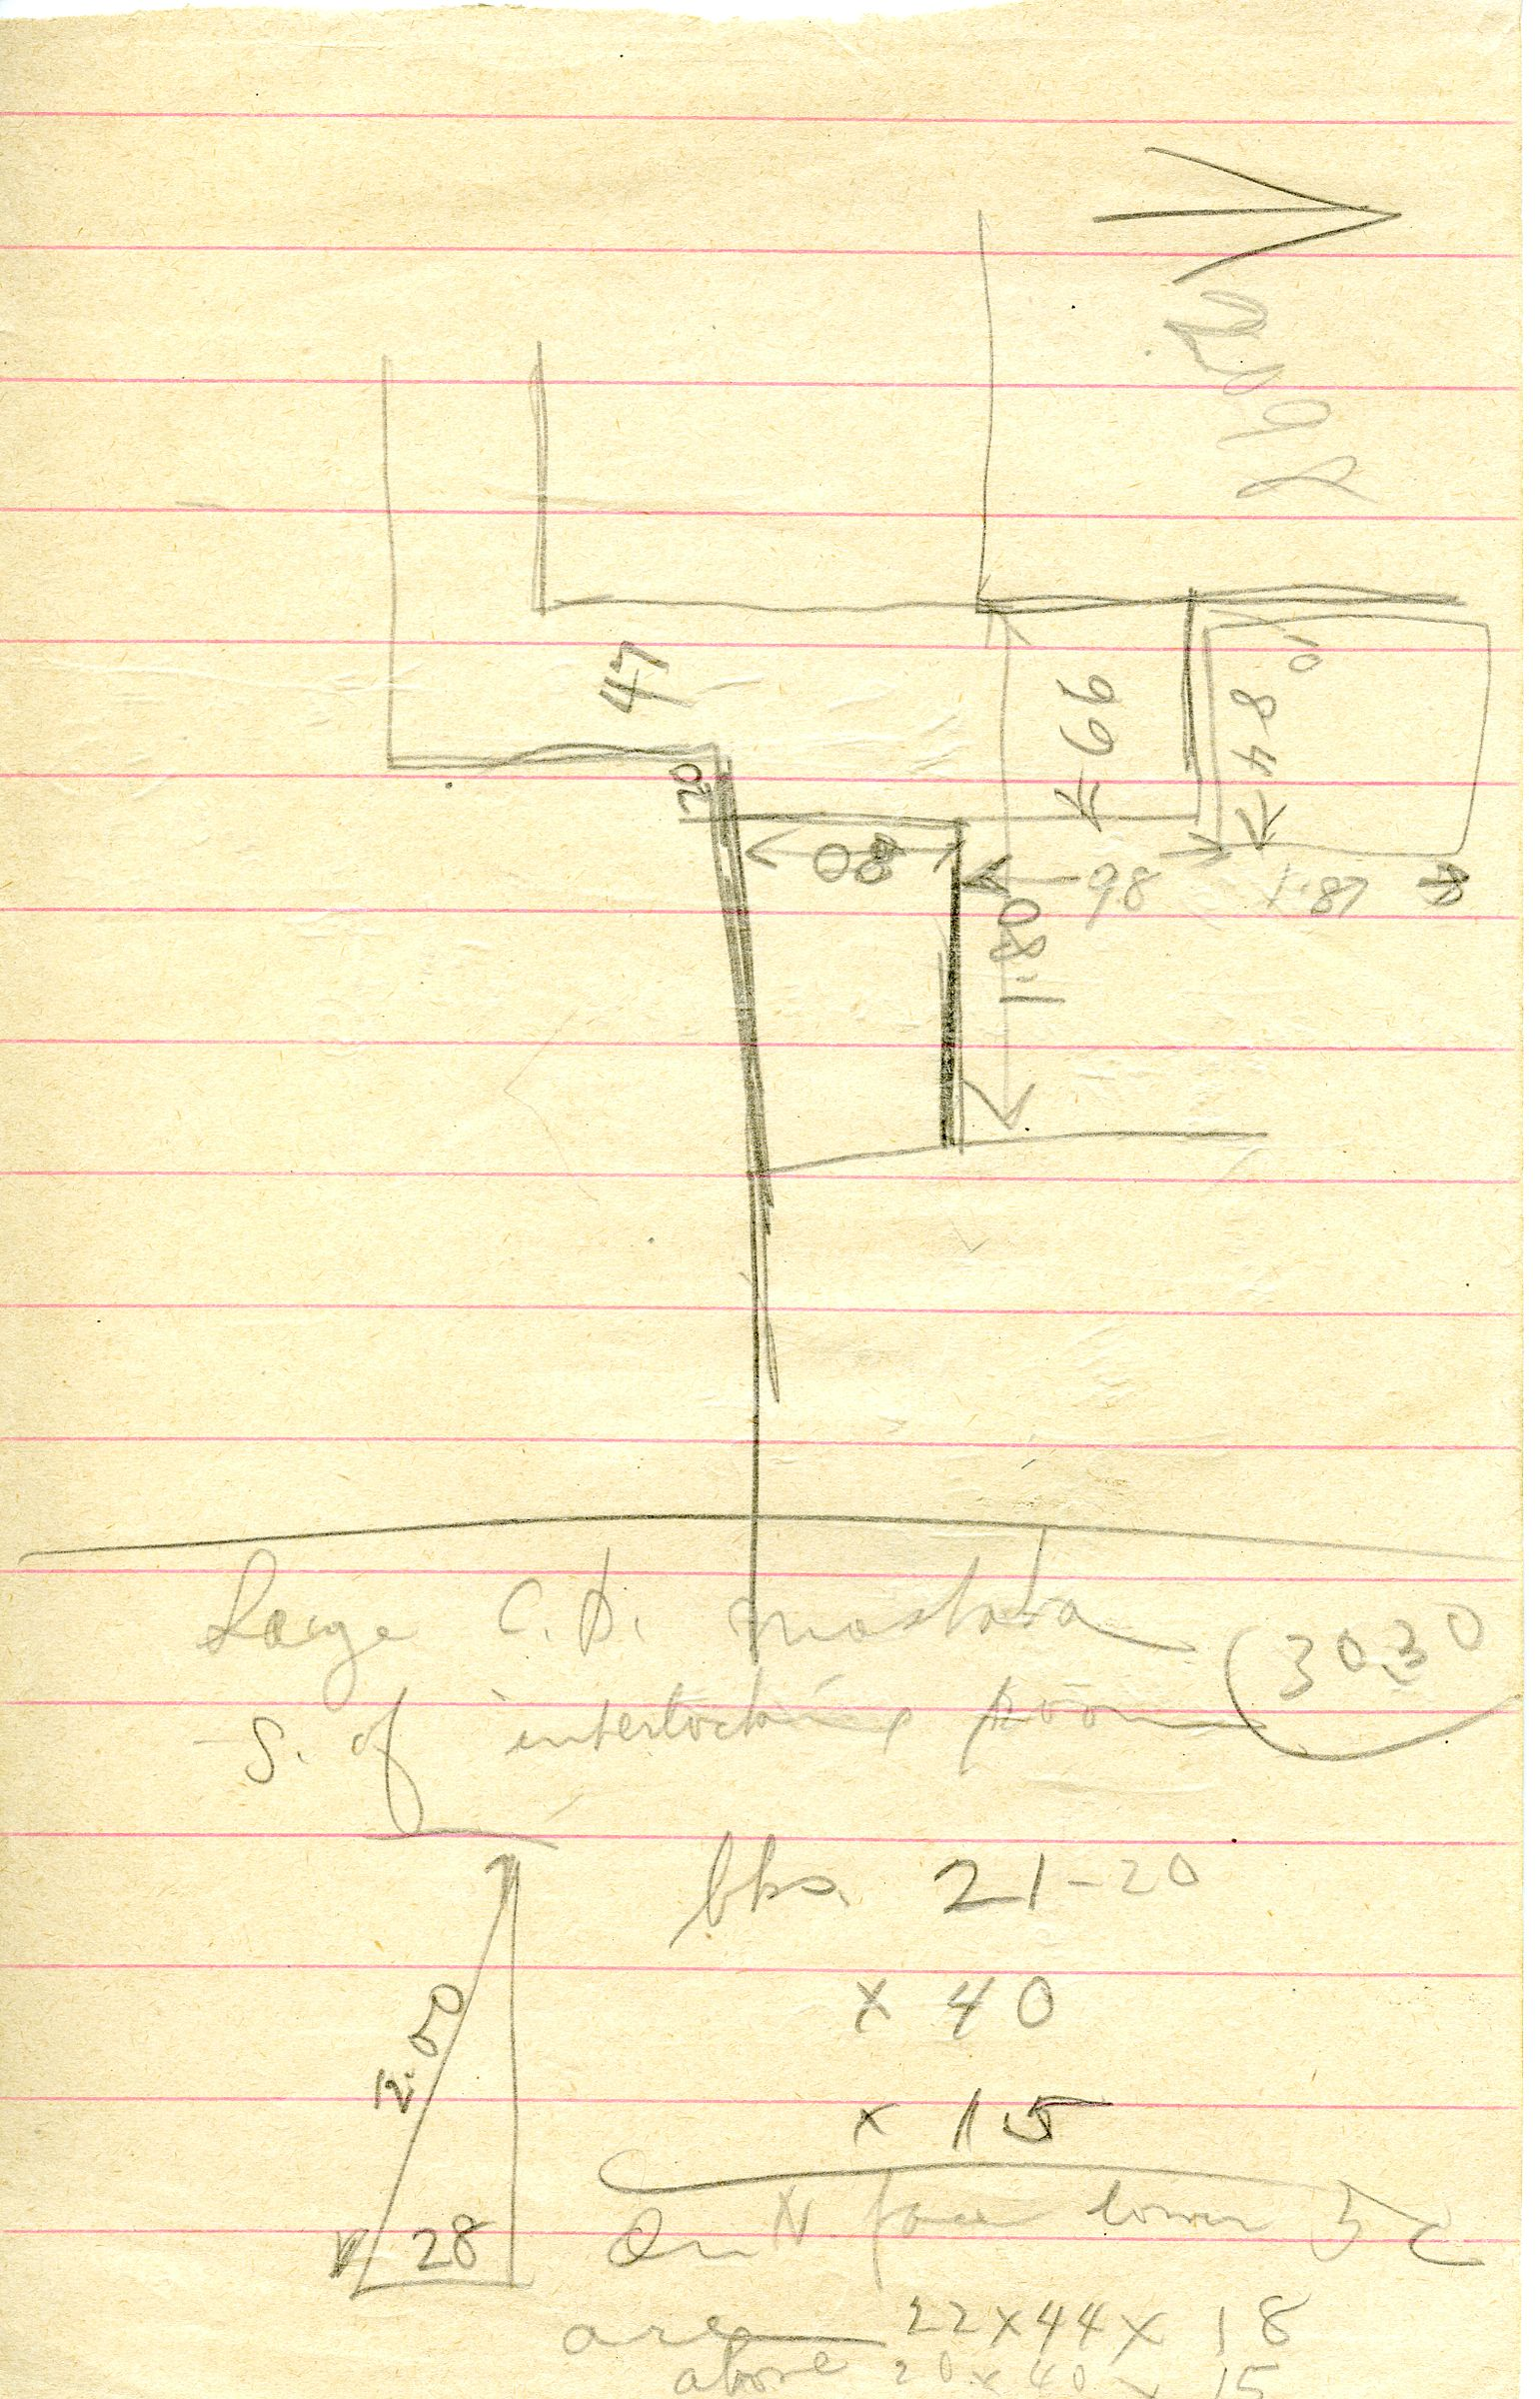 Maps and plans: G 3098, Sketch plan, and G 3030, Notes